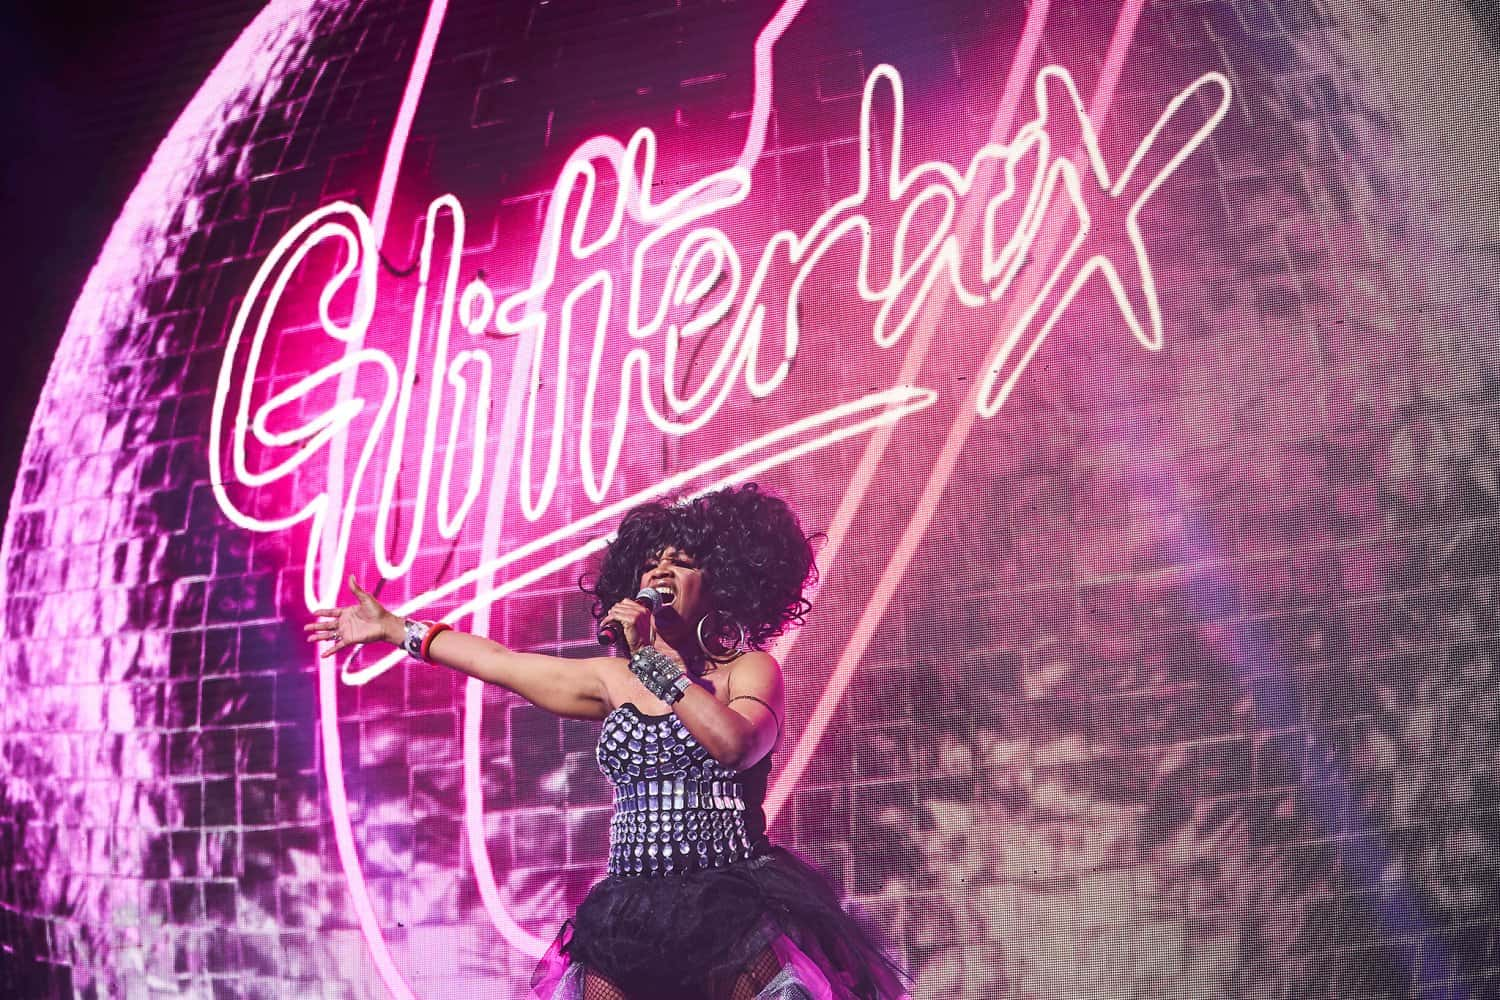 Glitterbox Ibiza 2019 - Tickets, Events and Lineup 5